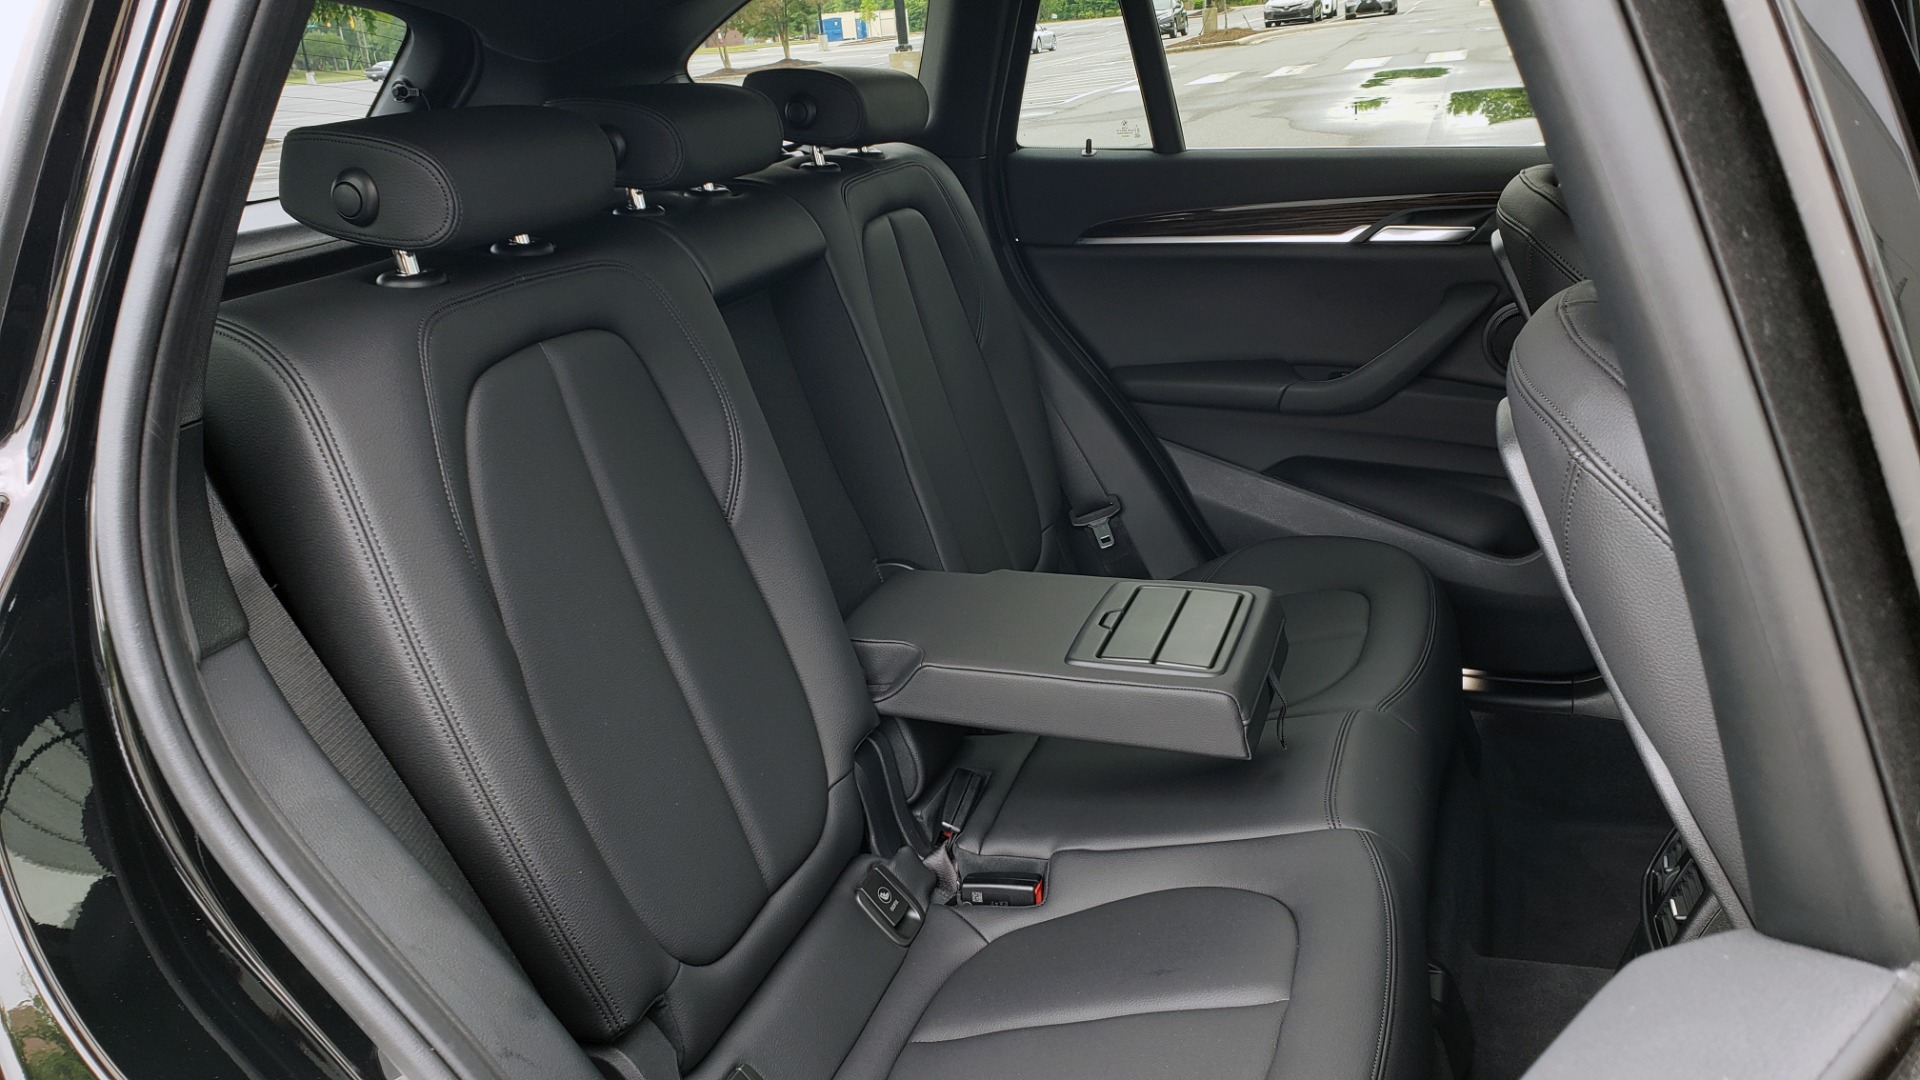 Used 2018 BMW X1 XDRIVE28I / CONV PKG / NAV / HTD STS / PANO-ROOF / REARVIEW for sale $30,995 at Formula Imports in Charlotte NC 28227 74